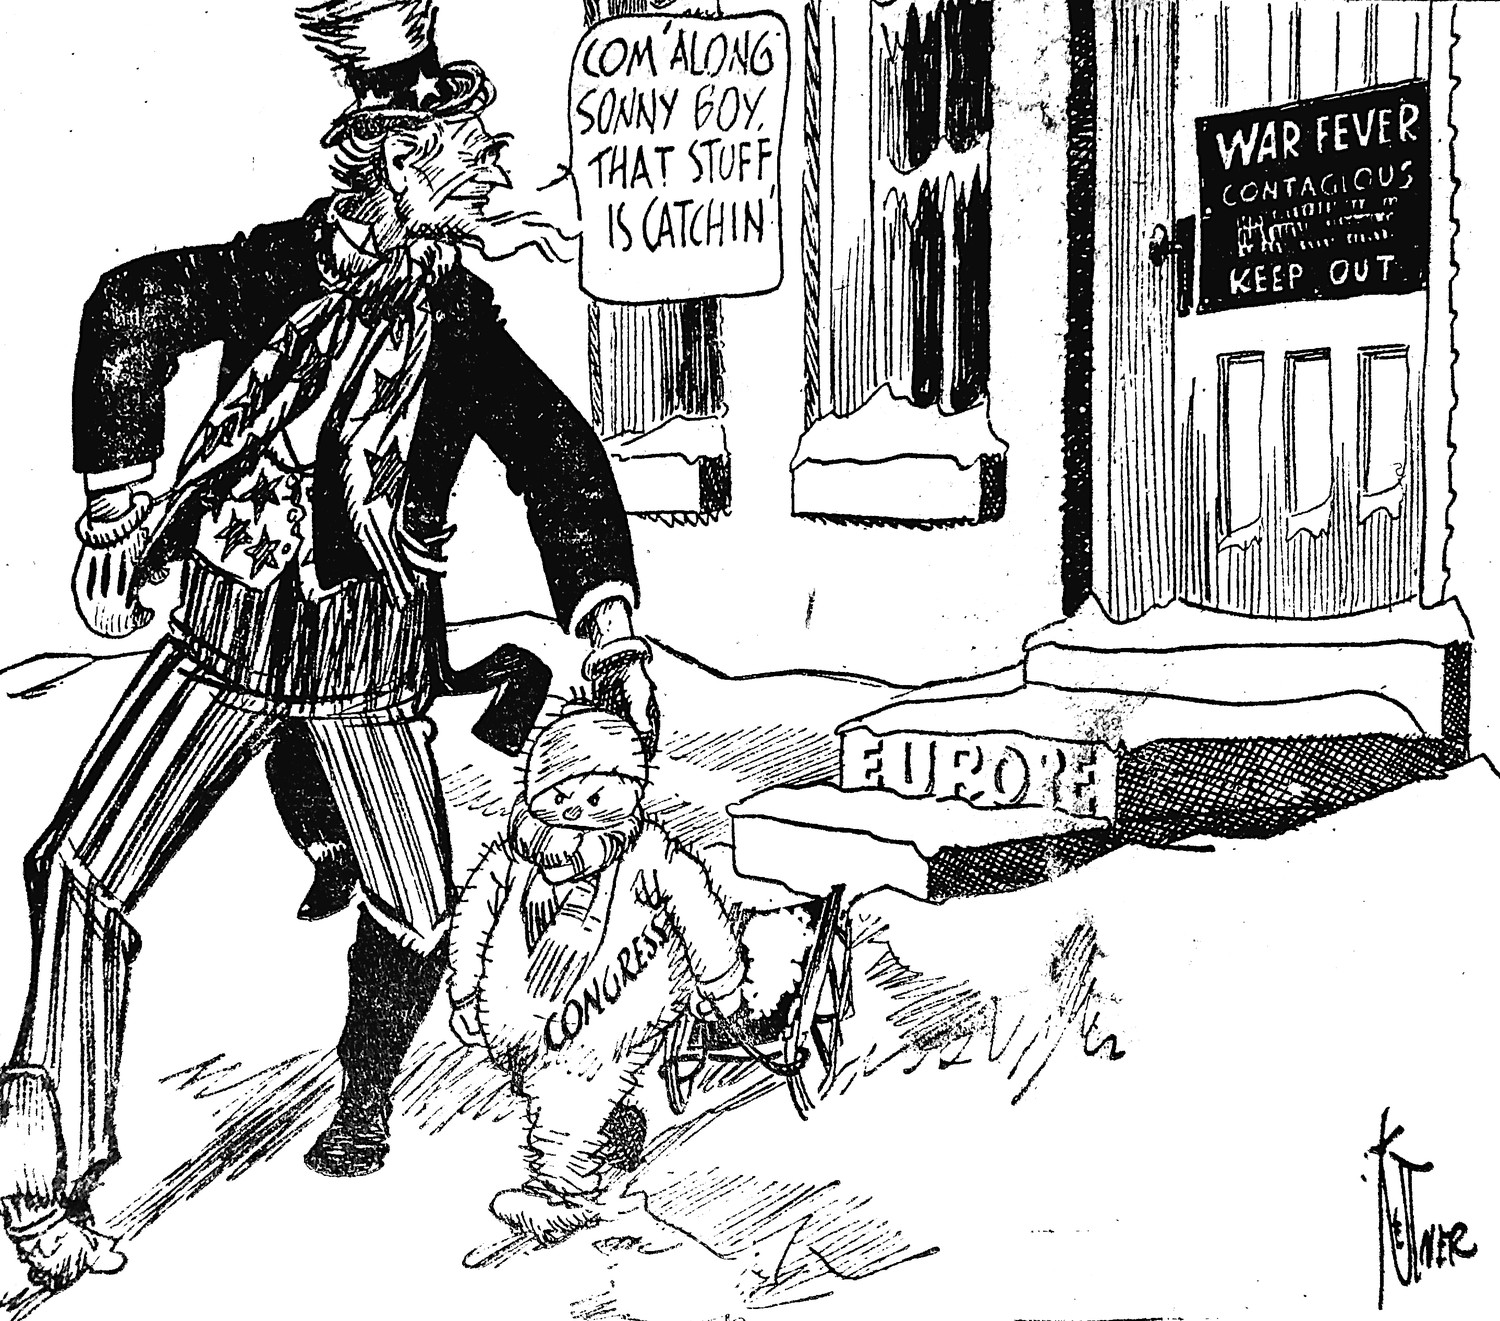 Editor's note: Editorial cartoons were regularly printed on the front page of the Middletown Journal in this era. This one cautions U.S. involvement in World War II in Europe. Remember, Pearl Harbor was almost two years away.